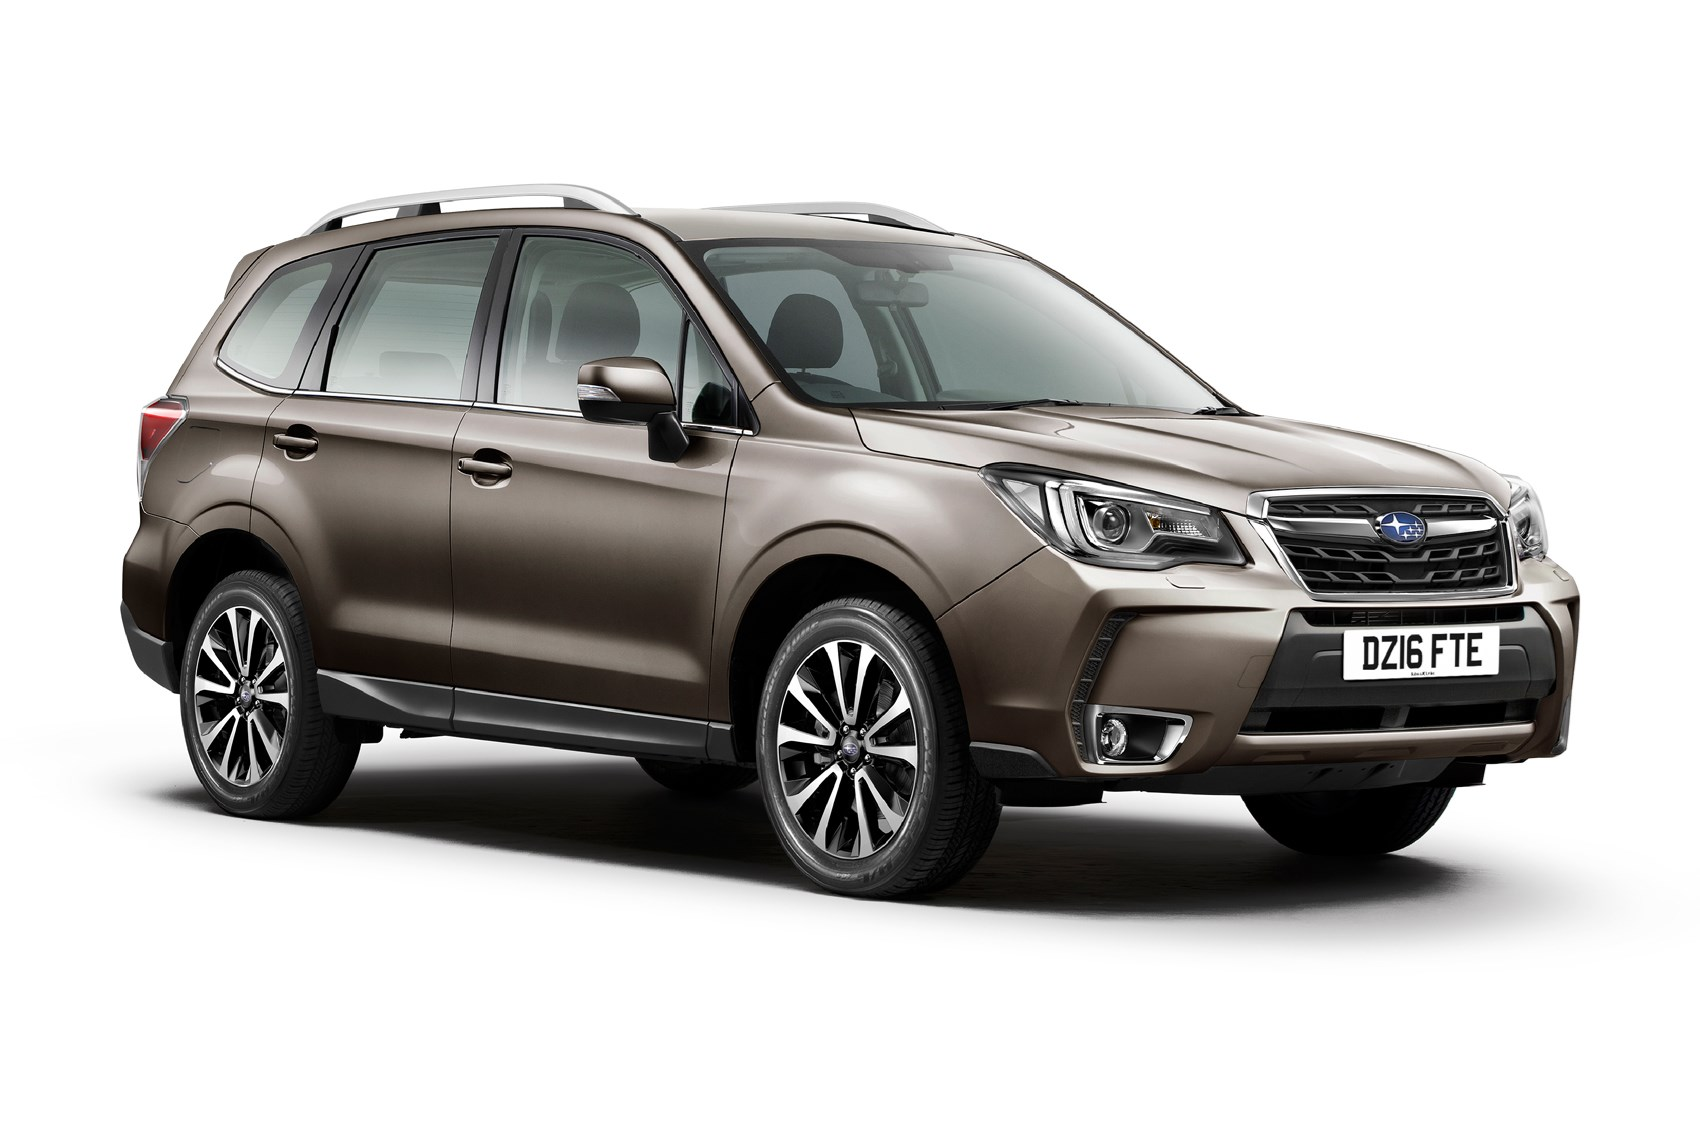 subaru forester view all subaru forester cars for sale view all subaru ...